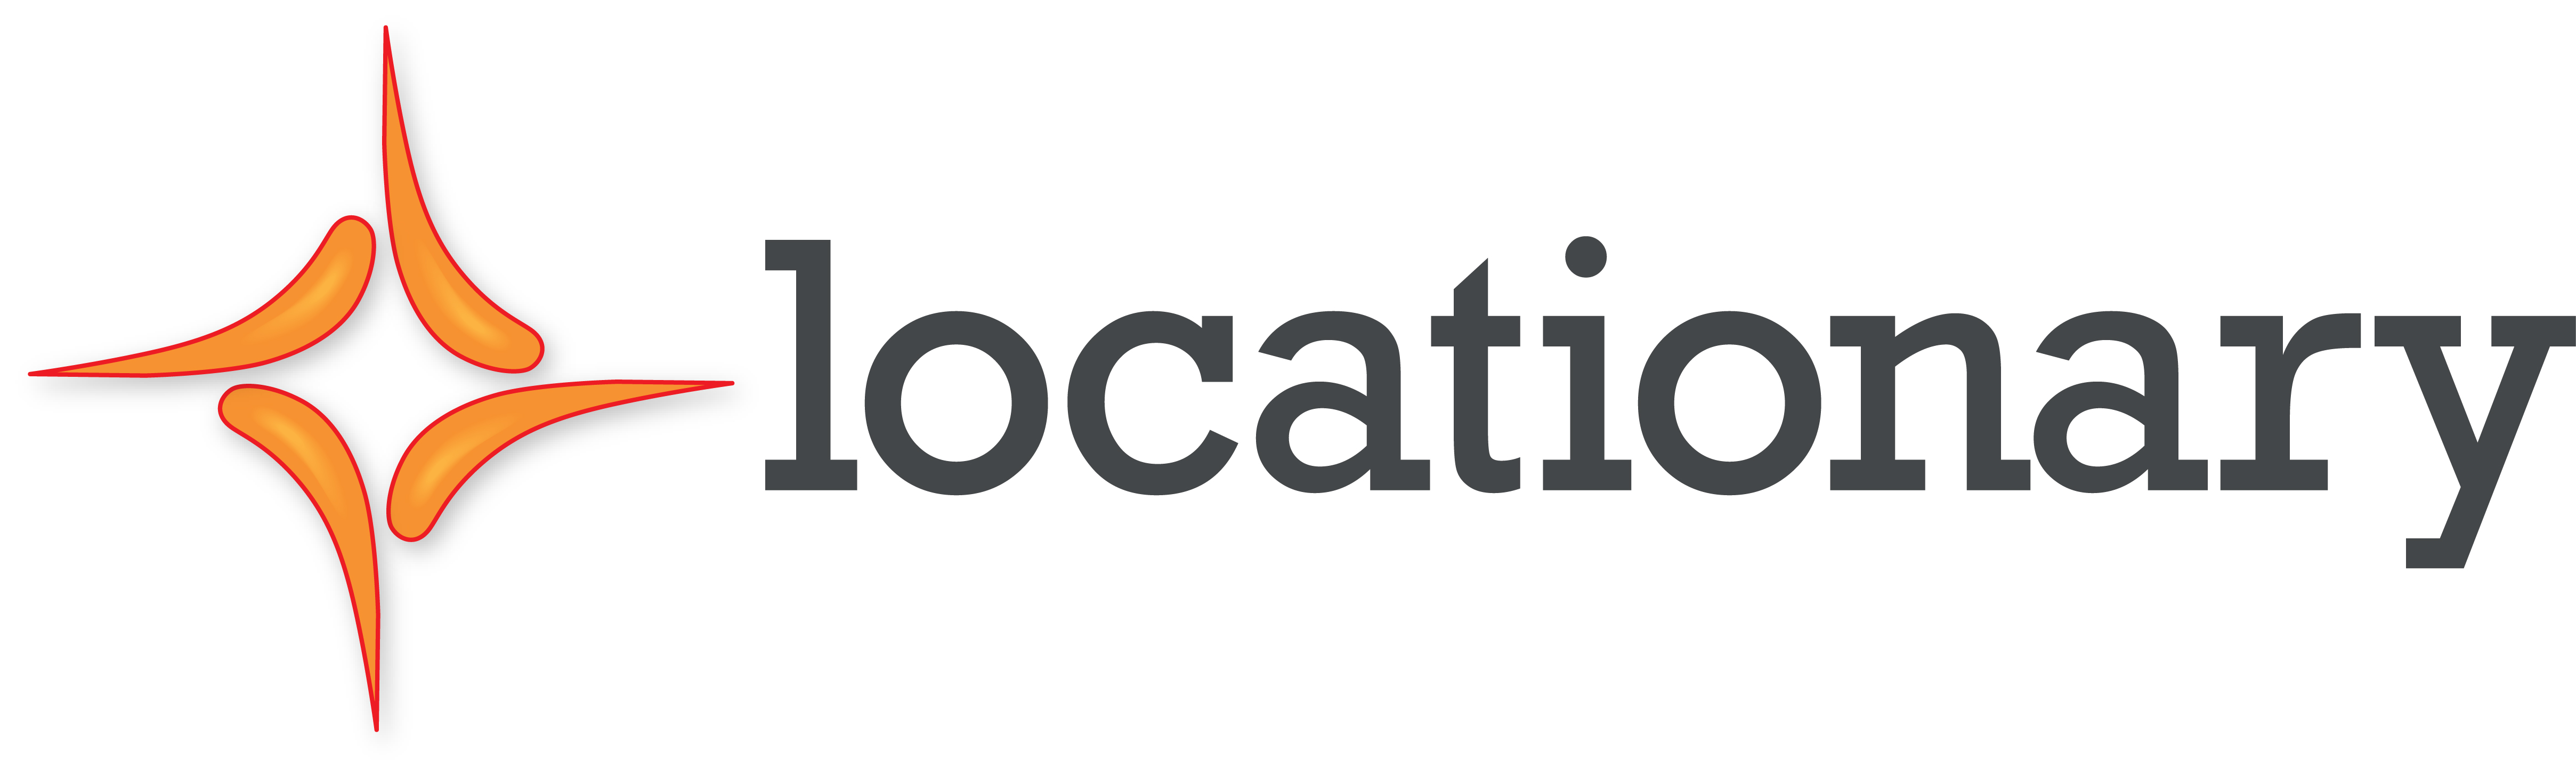 Logo da Locationary